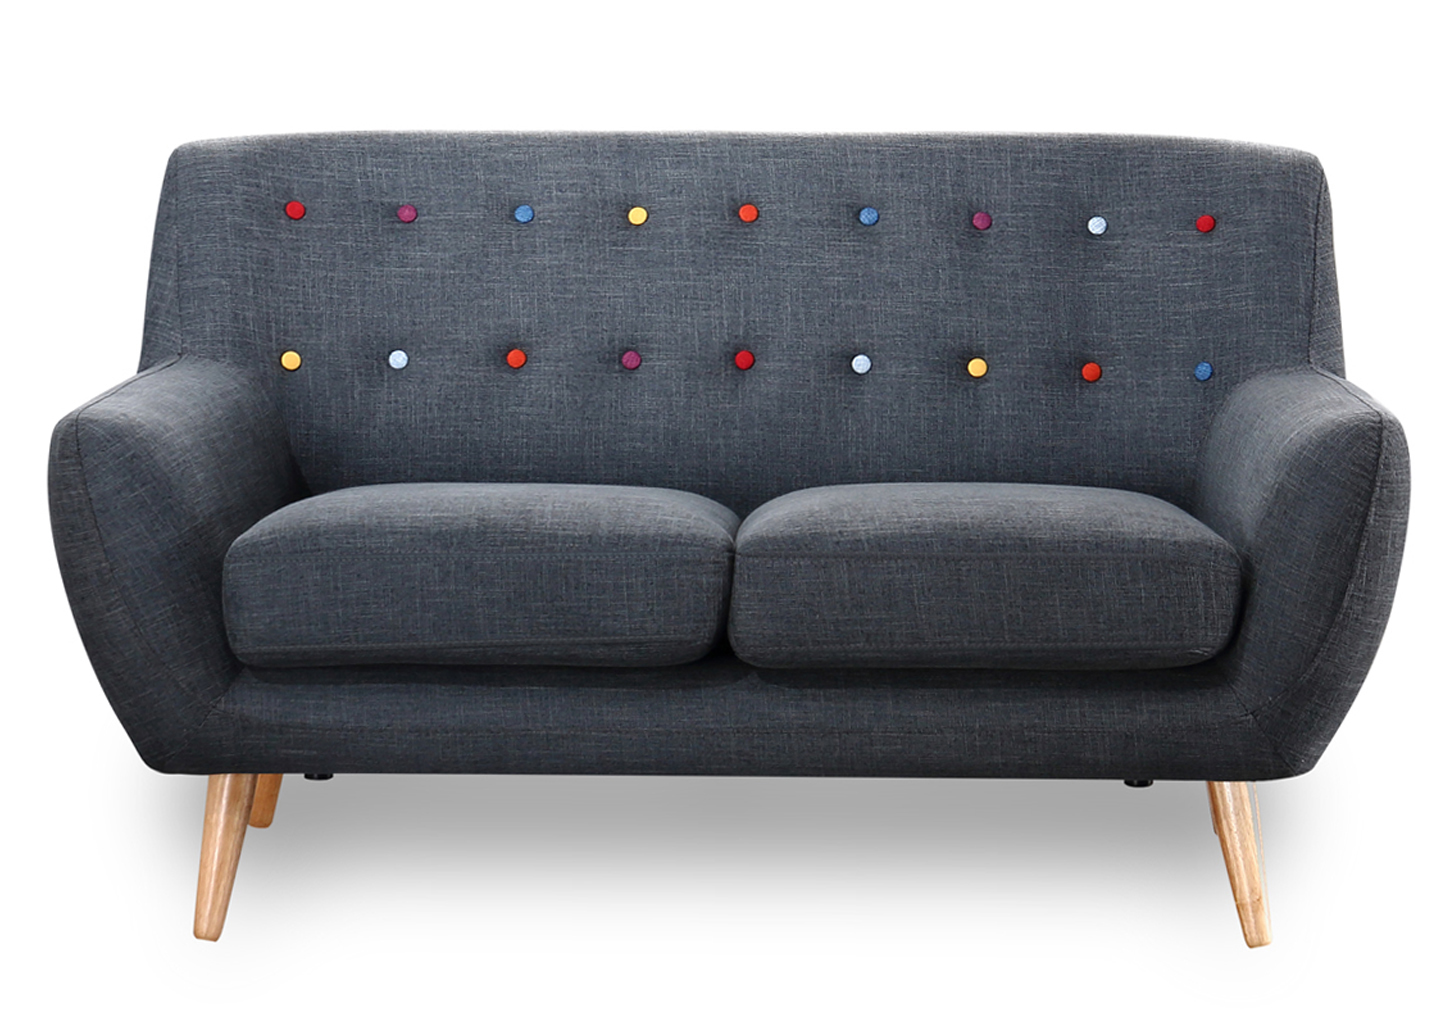 2 Seater Sofa in charcoal grey with rainbow buttons scandinavian style